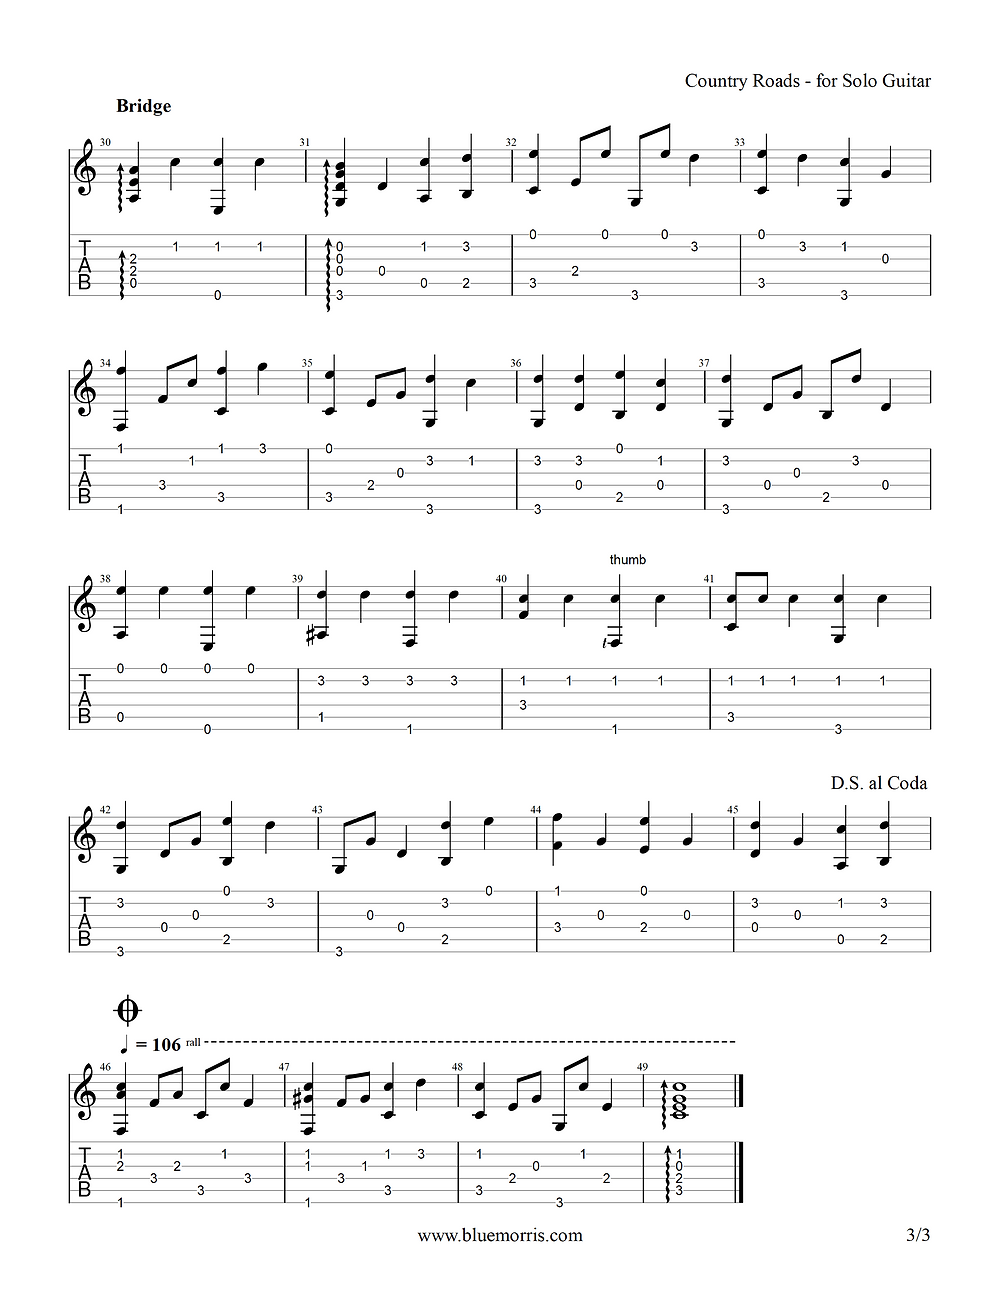 Country Roads guitar tab page 3